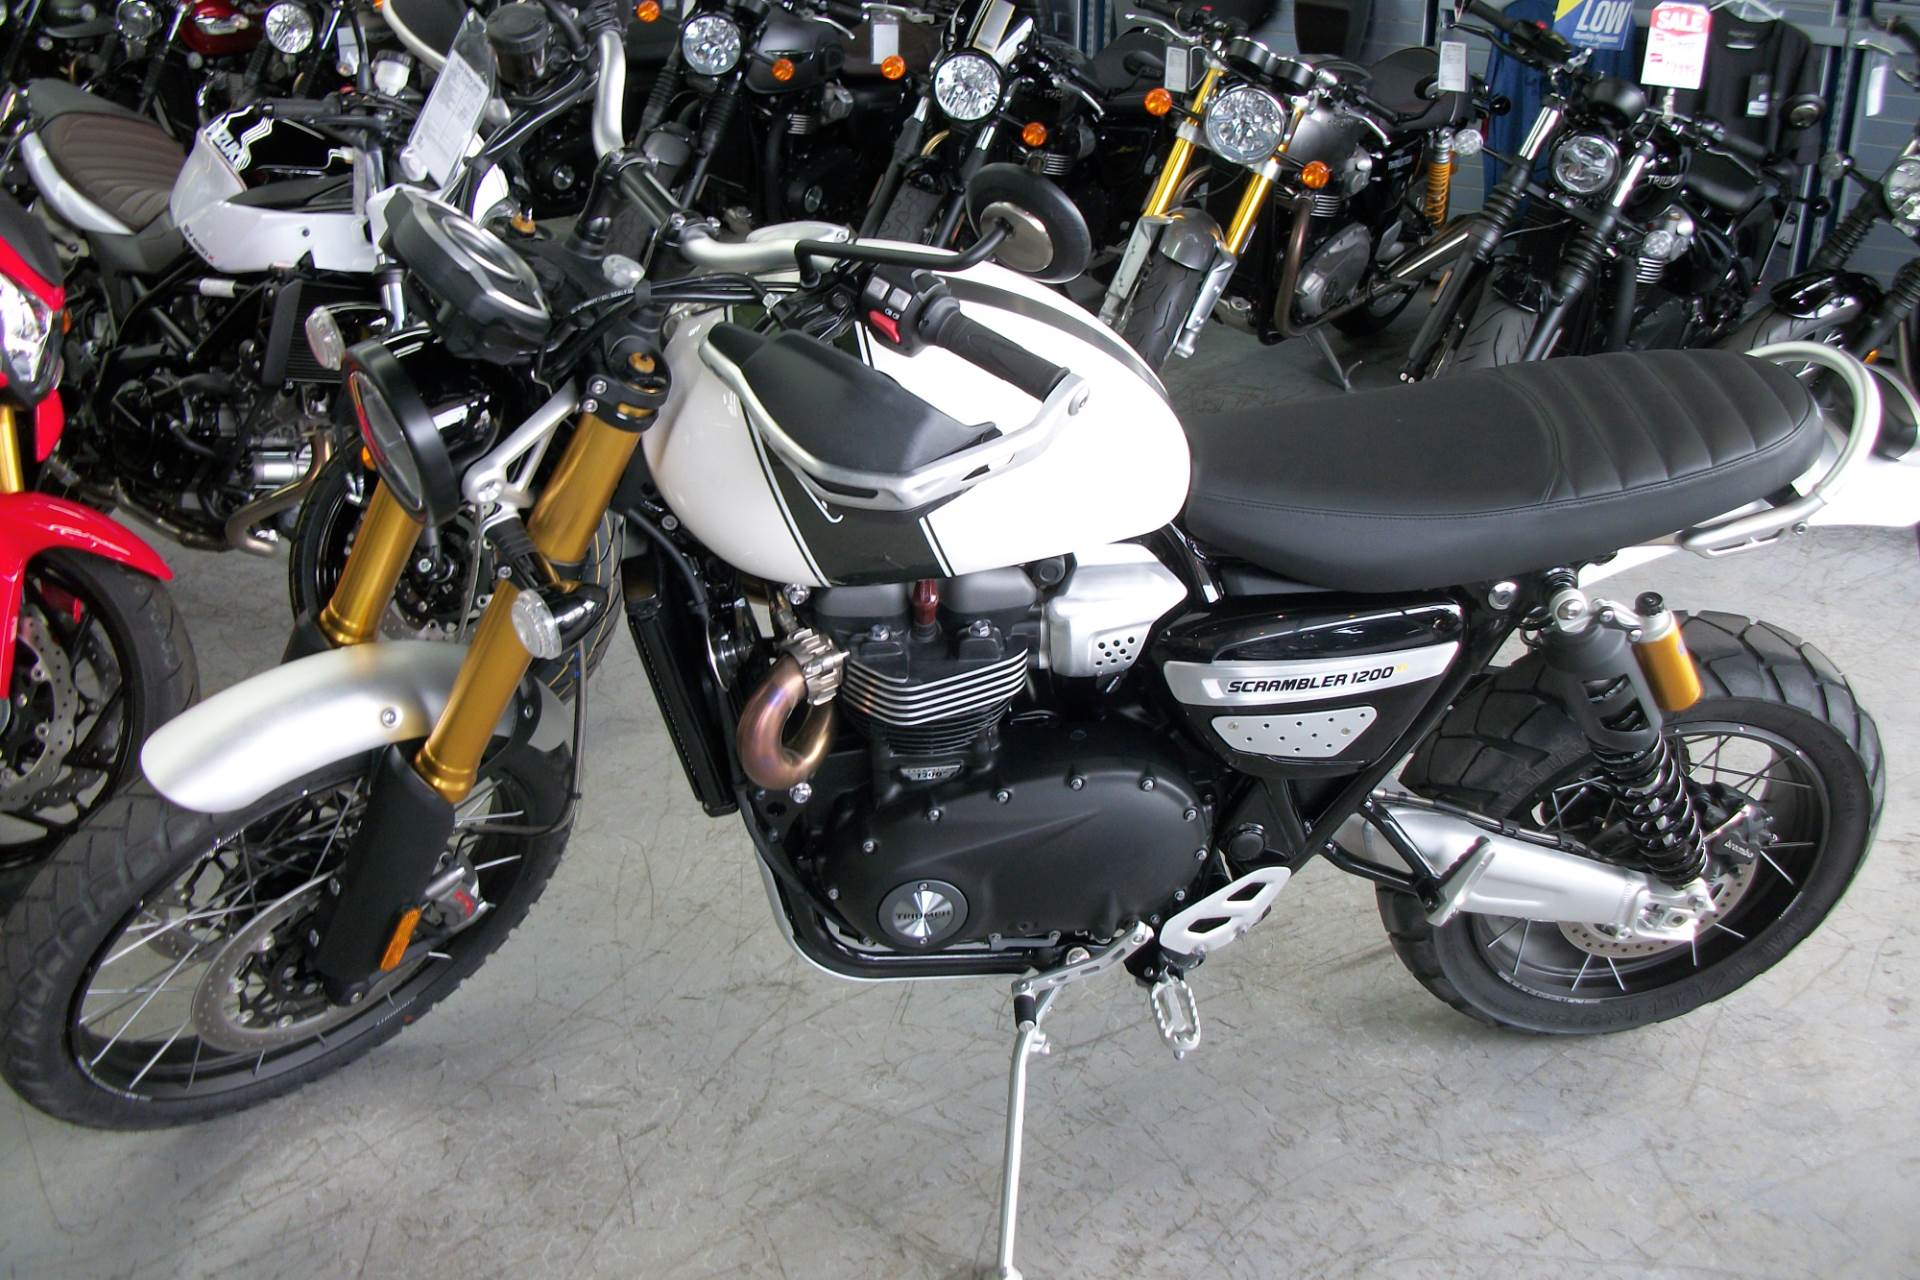 New 2019 Triumph Scrambler 1200 Xe Motorcycles In Simi Valley Ca